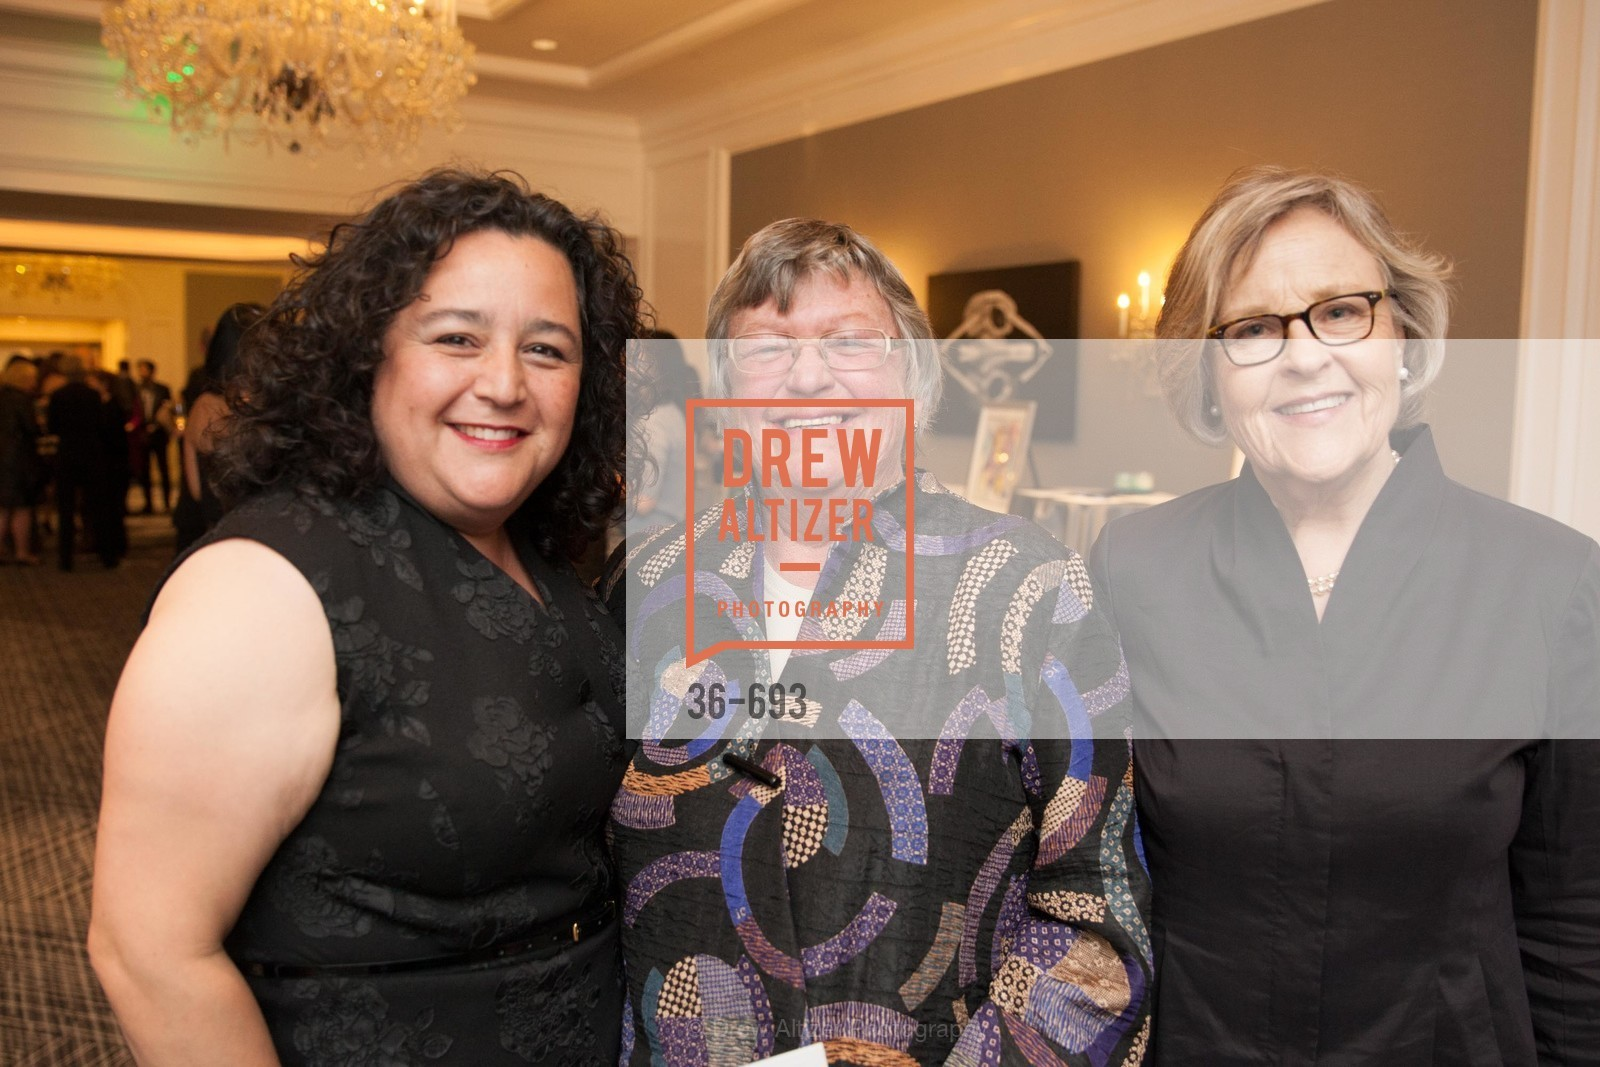 Renee Espinoza, Donna Hitchens, Judy Rutherford, SFCASA'S Fostering Change Gala:  Room Without A Roof, US, May 1st, 2015,Drew Altizer, Drew Altizer Photography, full-service agency, private events, San Francisco photographer, photographer california